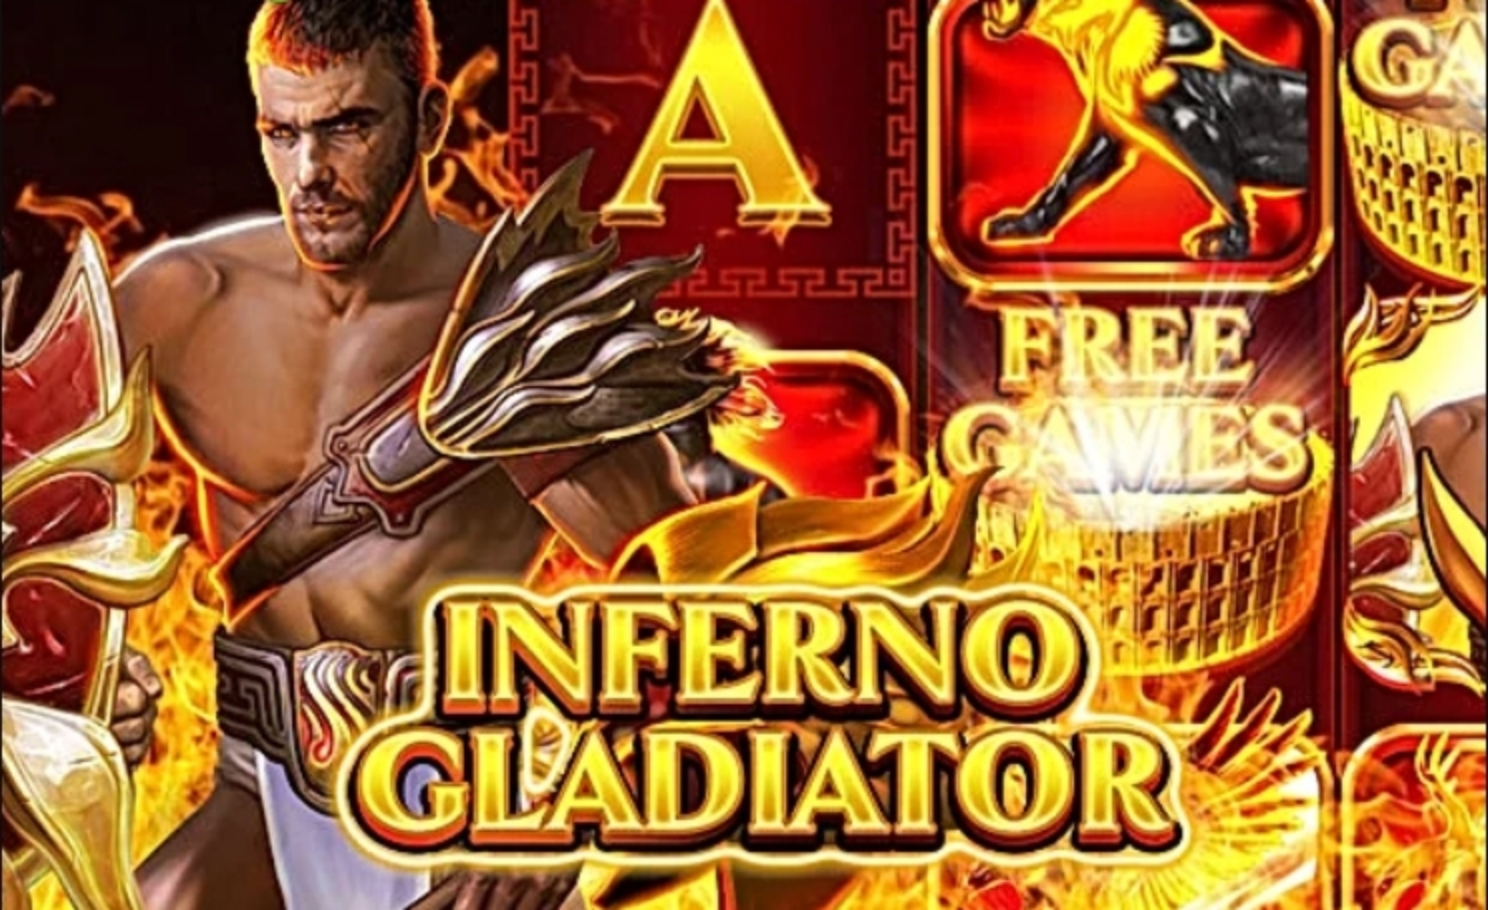 The Inferno Gladiator Online Slot Demo Game by GONG Gaming Technologies